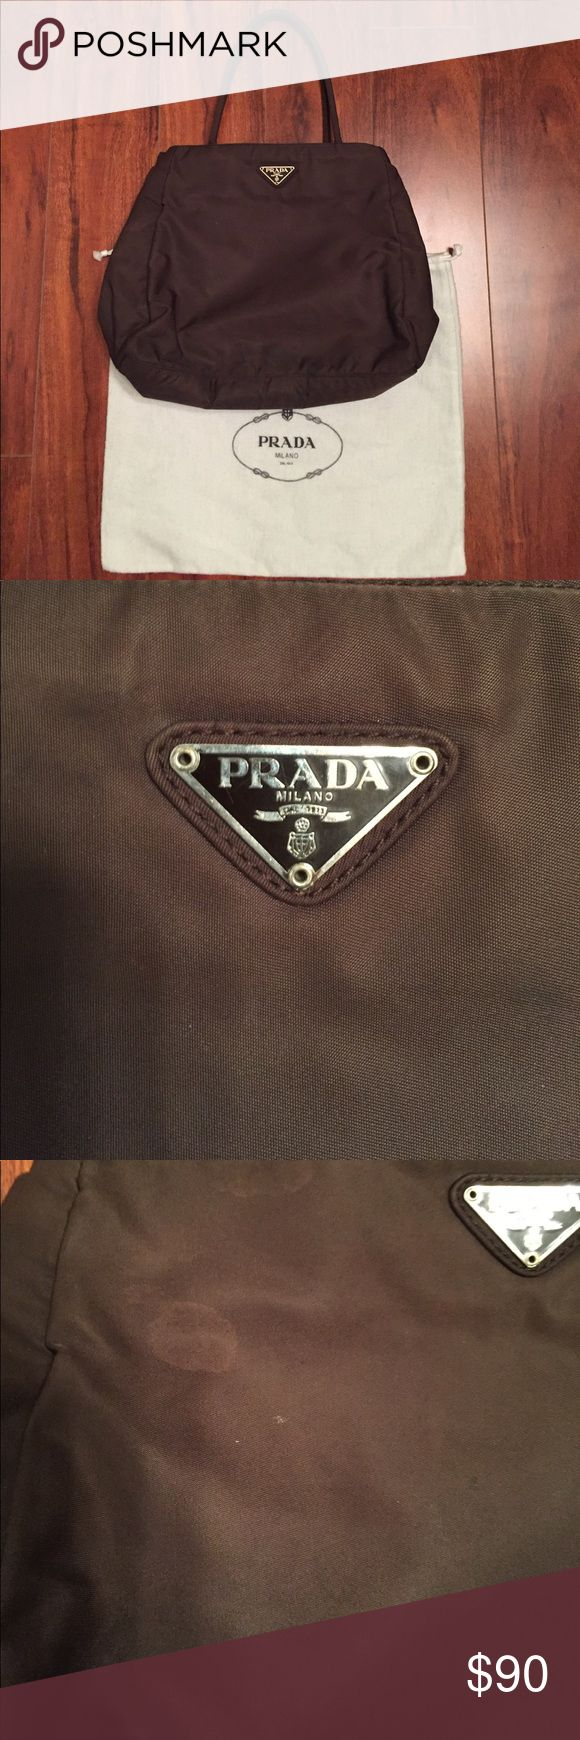 Authentic Prada Tessuto tote This purse shows wearing and aging signs. Stains on the fabric. You can clean it professionally. Price reflects this. Inside is clean. No rips or odor. Still has a lot of life. Comes with dust bag but no authenticity card. Prada Bags Totes